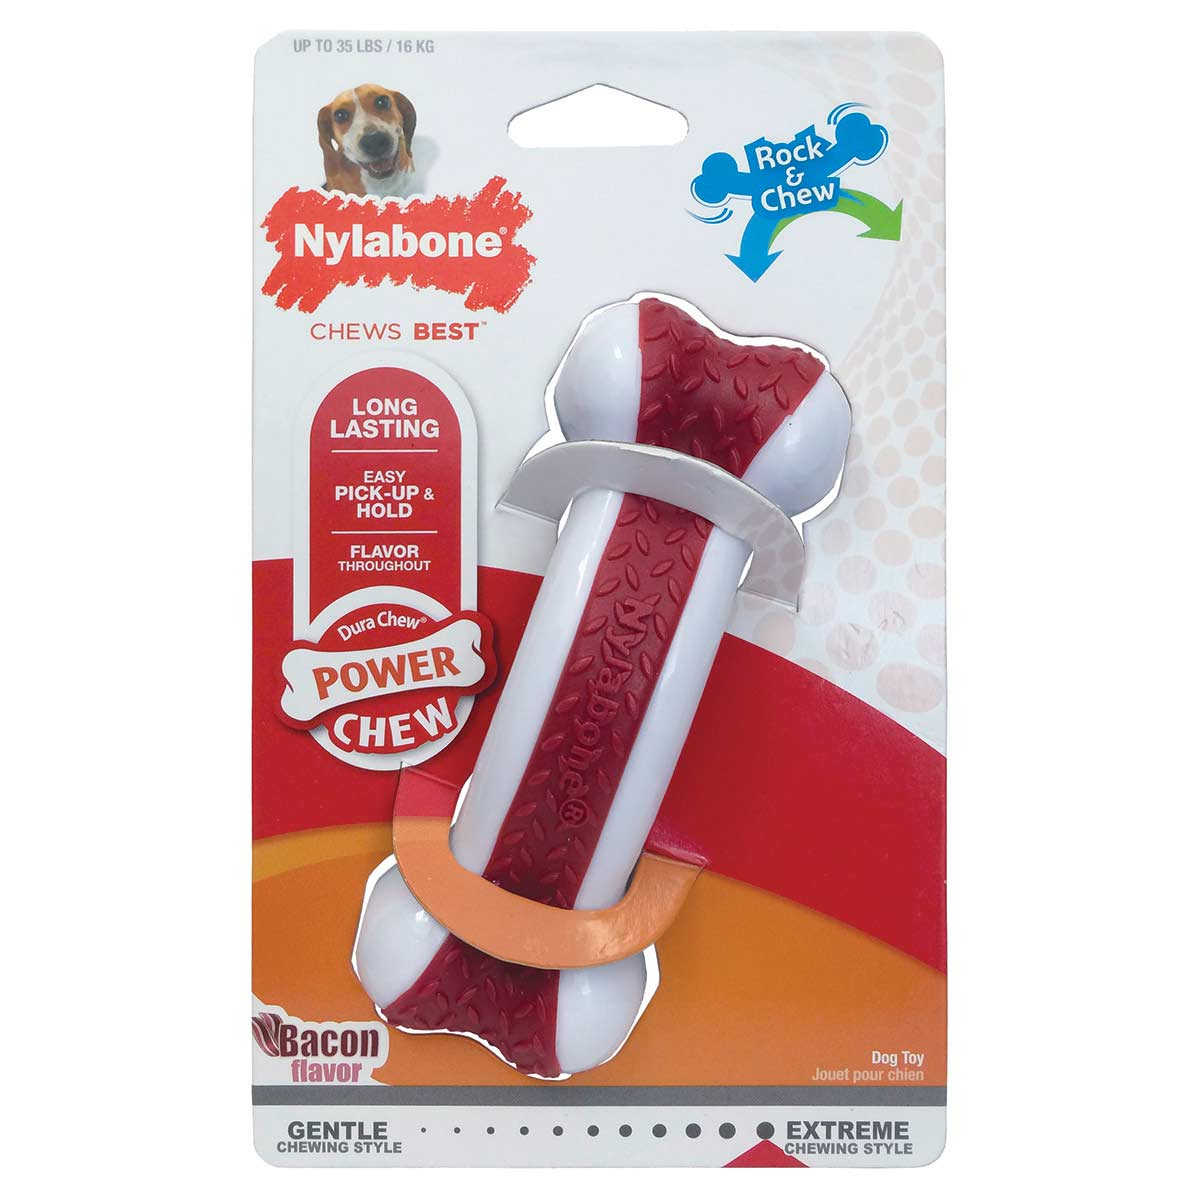 Nylabone Dura Chew Arch Bone and Chew Bacon Flavor Wolf Size Dog Chew